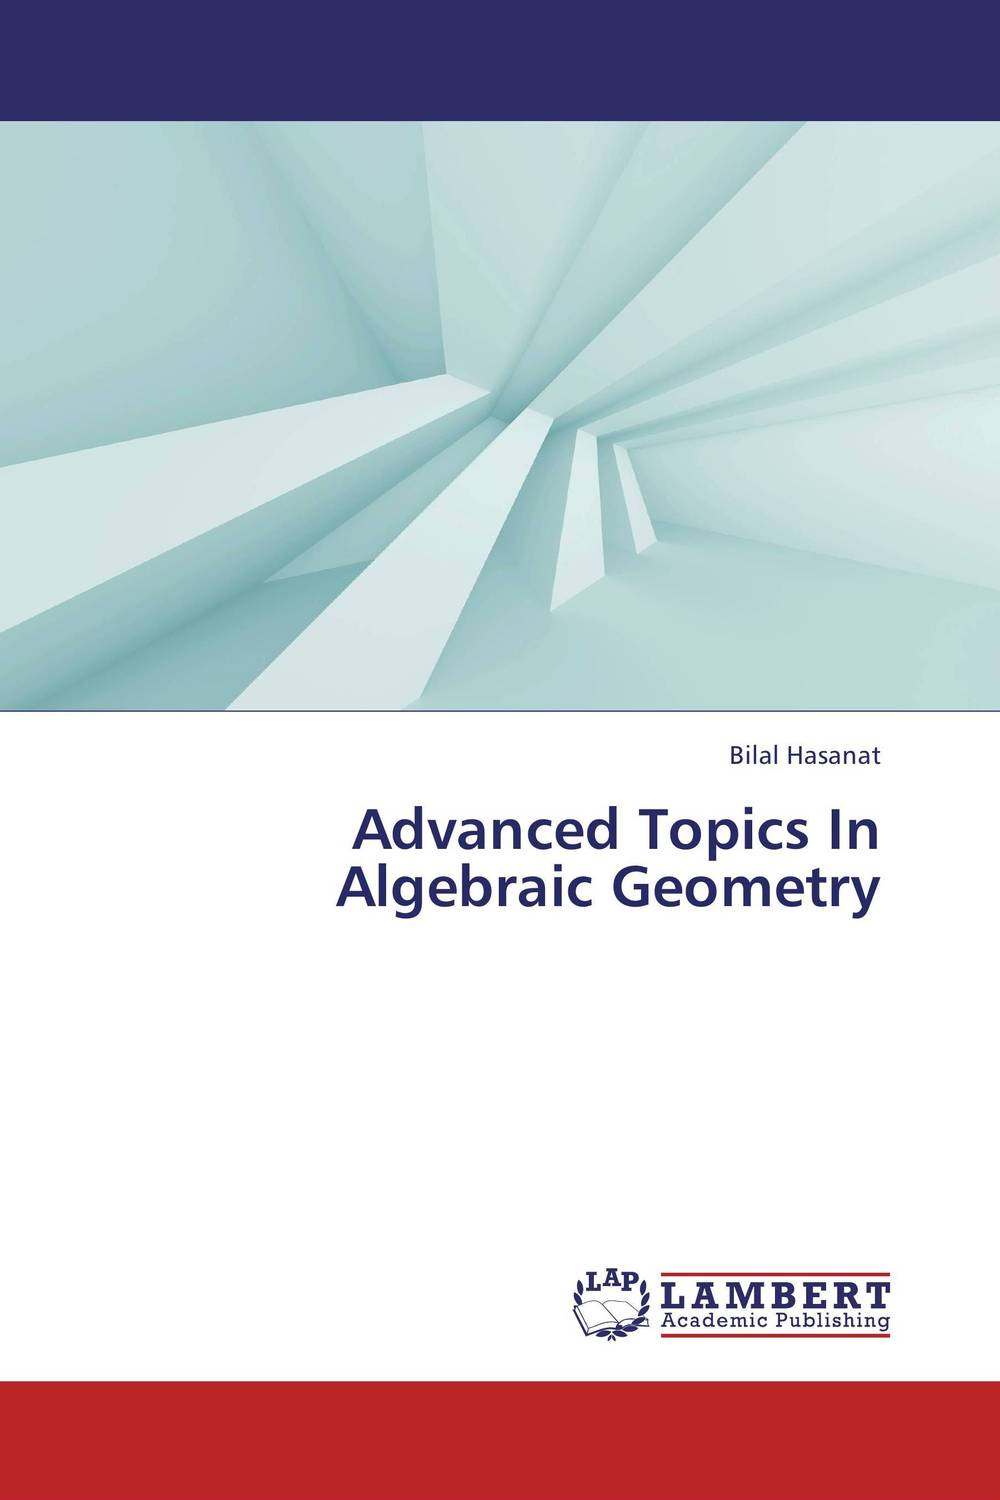 Advanced Topics In Algebraic Geometry